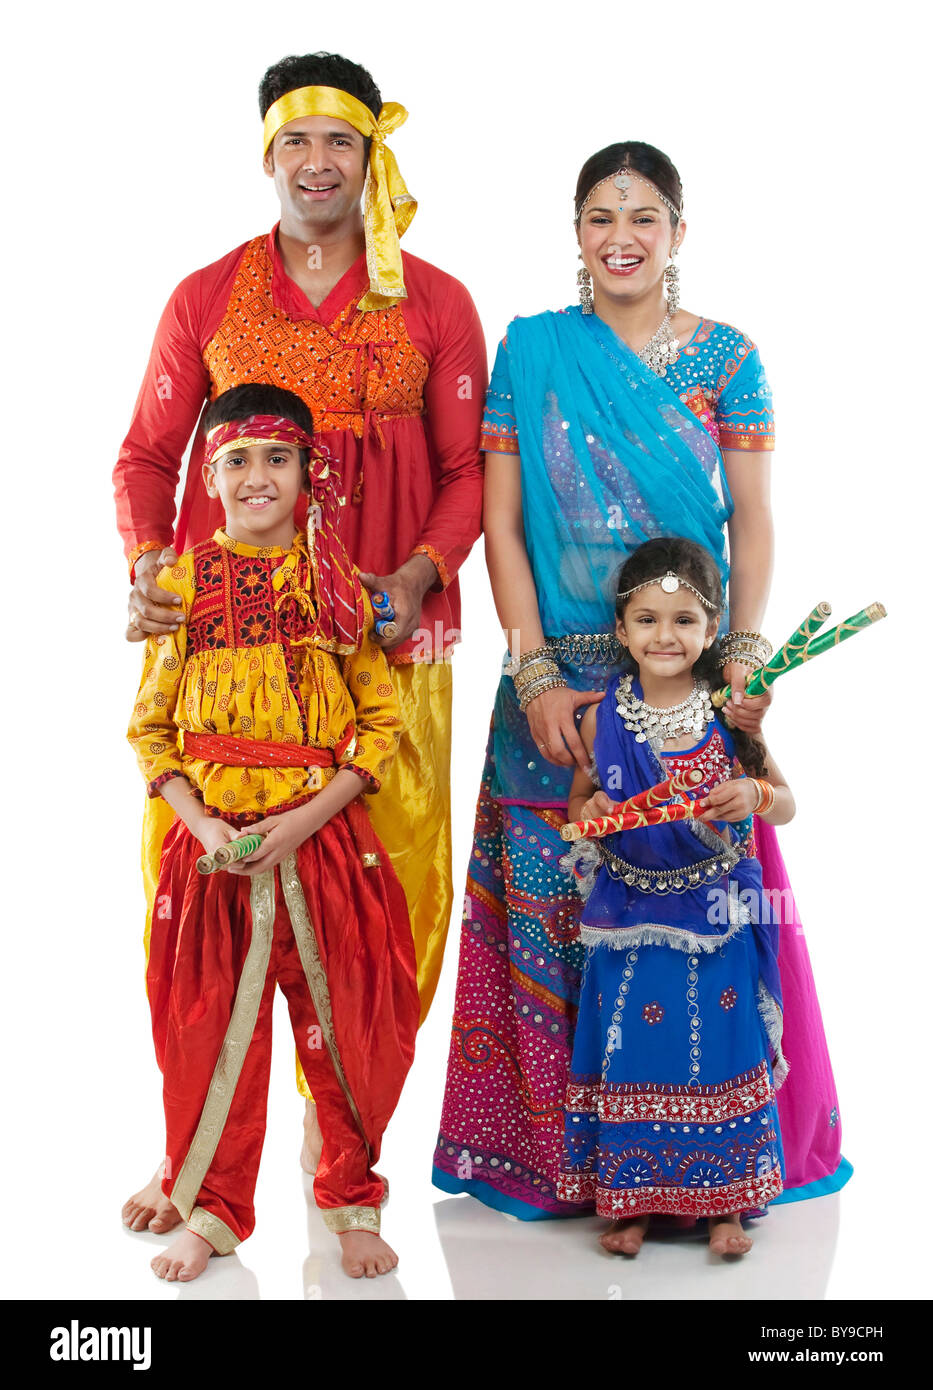 Gujarati Family In Traditional Attire Stock Photo. Living Room Accent Rugs. Teal Living Room Accents. Unusual Living Room Chairs. Broyhill Living Room Furniture. Living Room Grey Carpet. Wall Units For Living Rooms. Type Of Tiles For Living Room. 3 Piece Living Room Set Cheap